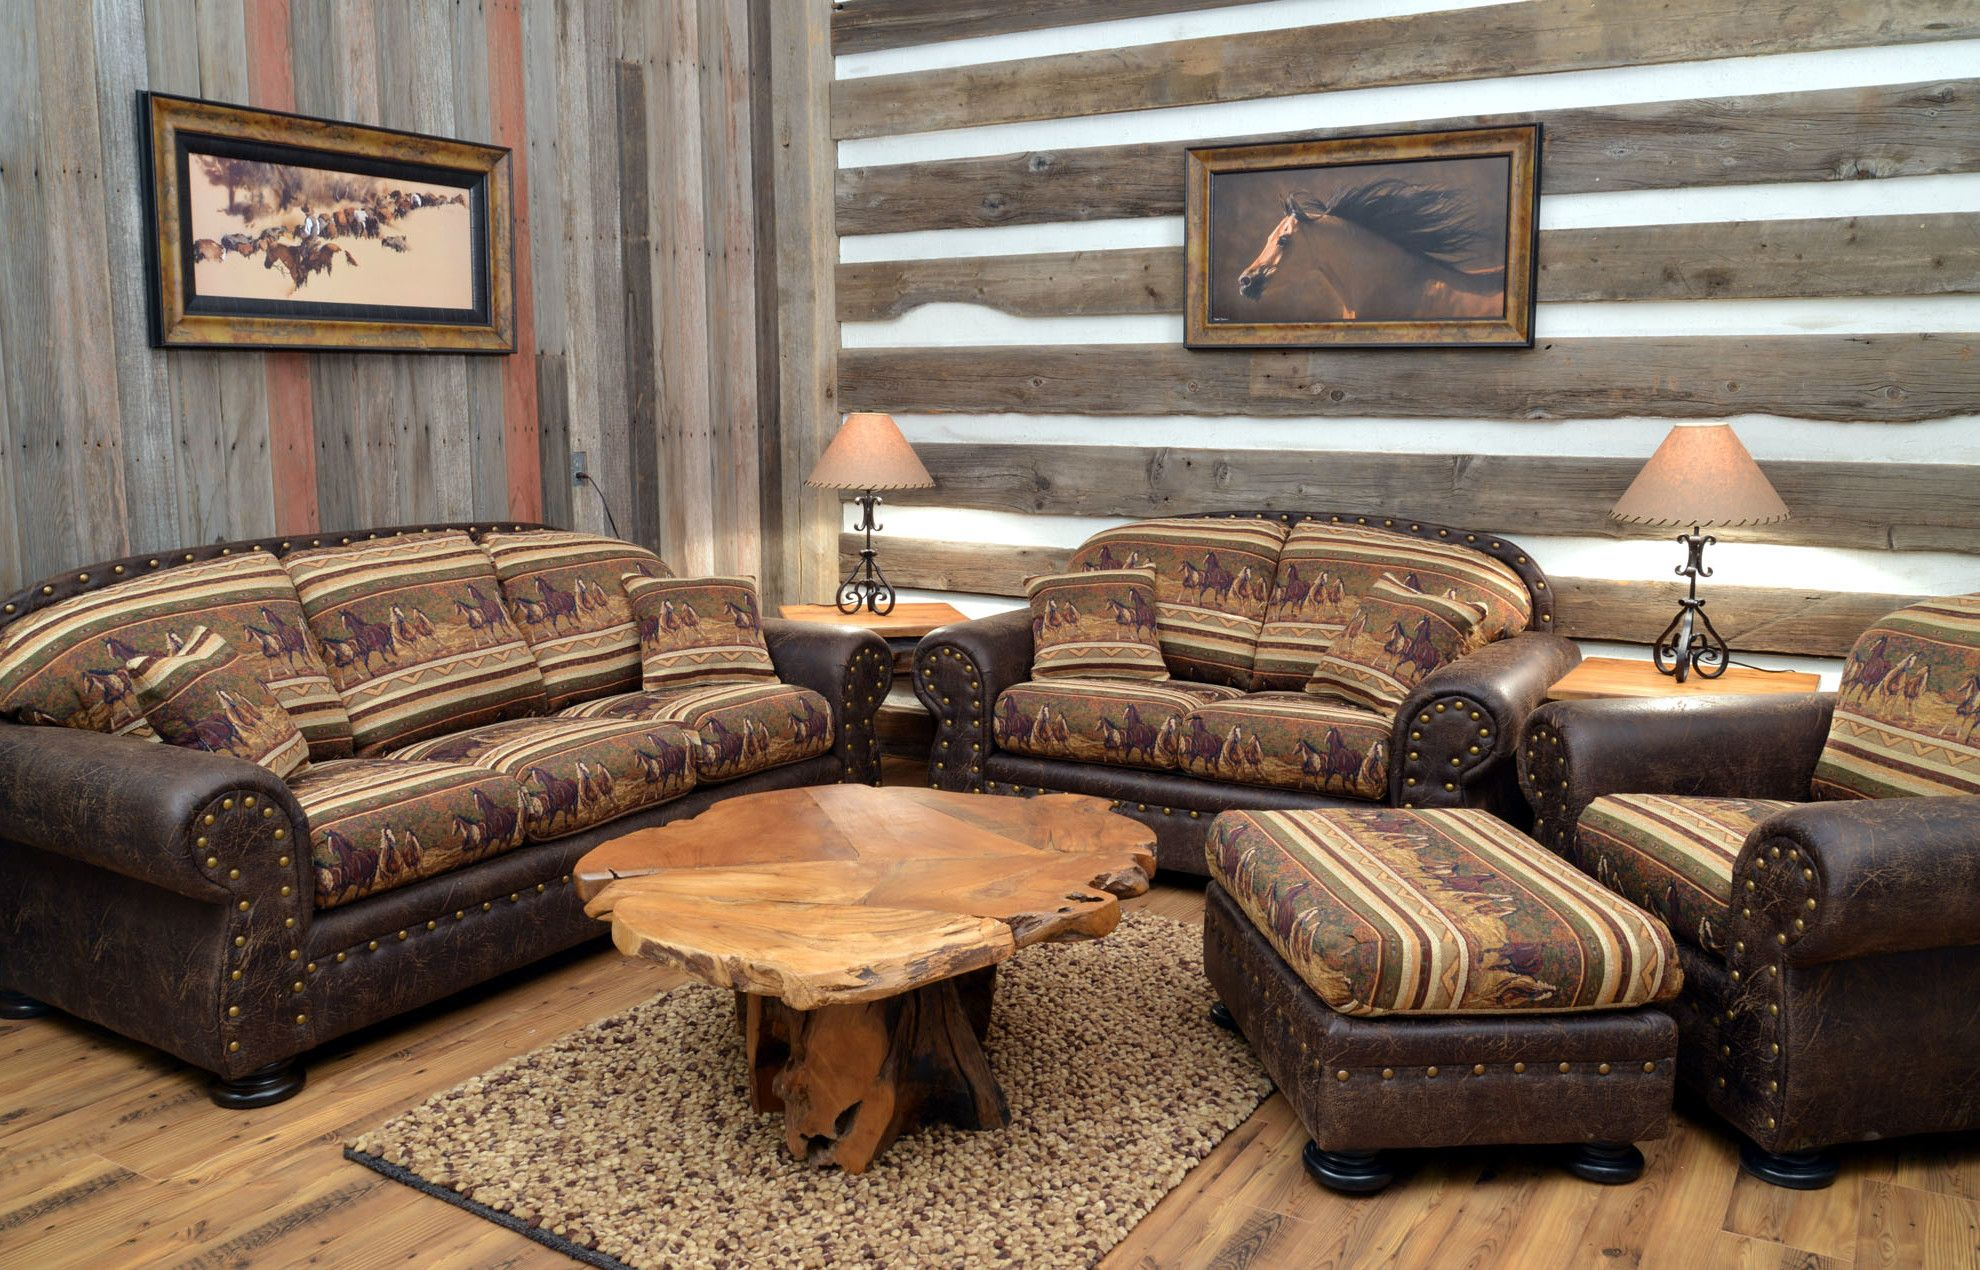 Bon At Back At The Ranch We Have Great Southwest Furniture And Rustic, Western  Style Decorating Ideas For Cabins   Hope You Enjoy Our Living Room  Collection!